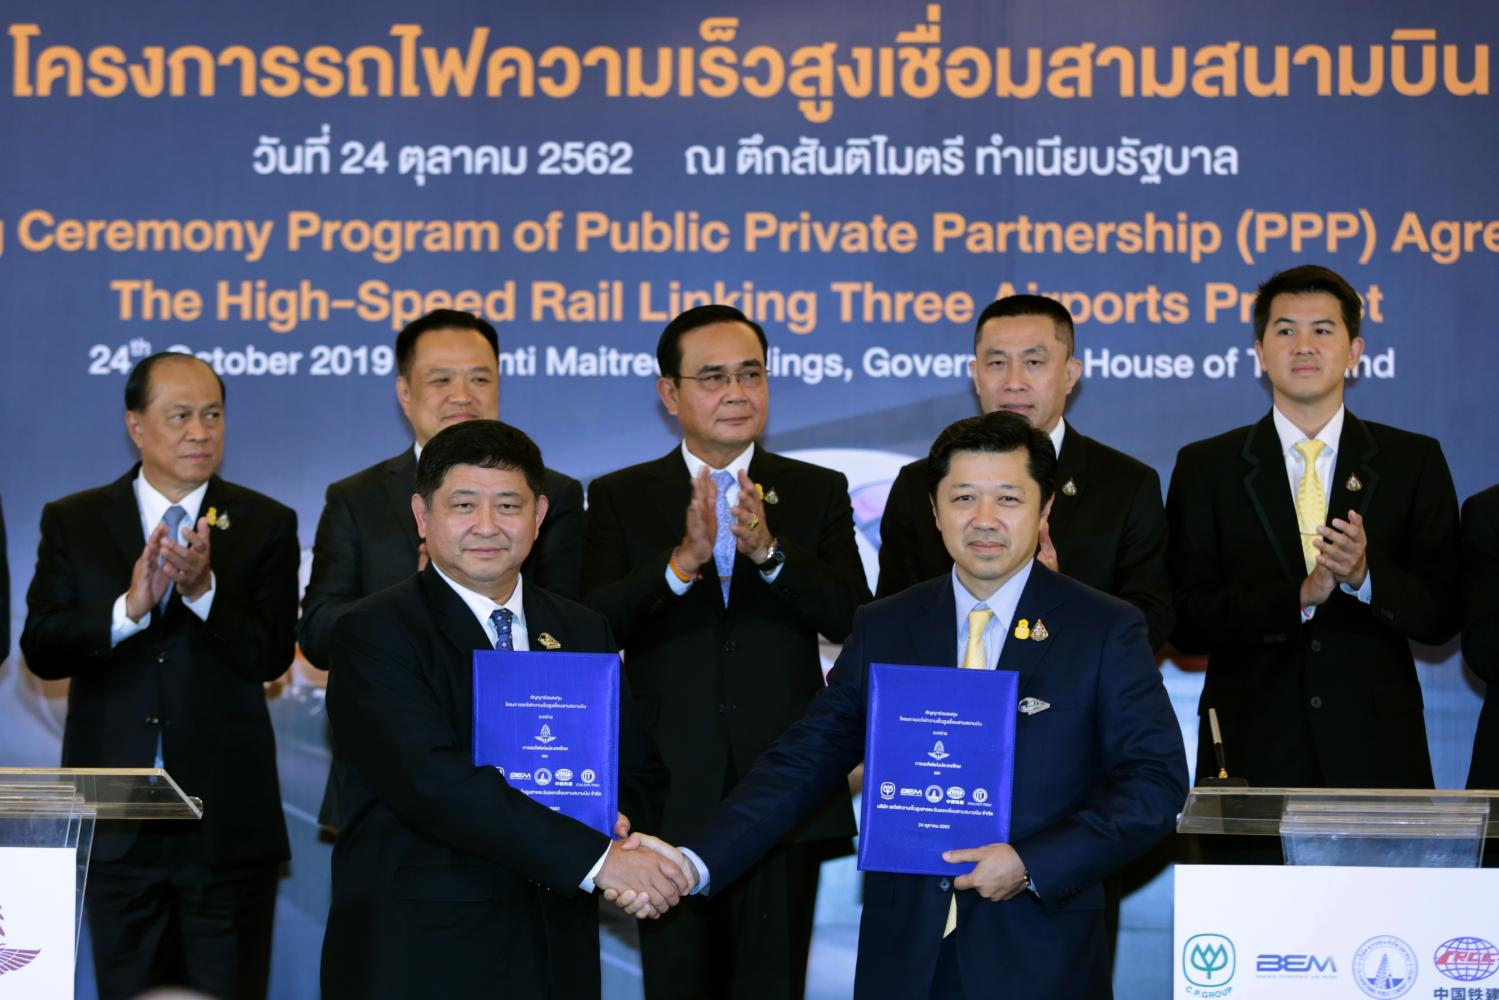 Acting head of the State Railway of Thailand Worawut Mala ( front left) and Charoen Pokphand Group CEO Suphachai Chearavanont shake hands with signed contracts for the high-speed train linking three airports at Government House on Thursday. Prime Minister Prayut Chan-o-cha witnessed the signing. (Photo by Chanat Katanyu)